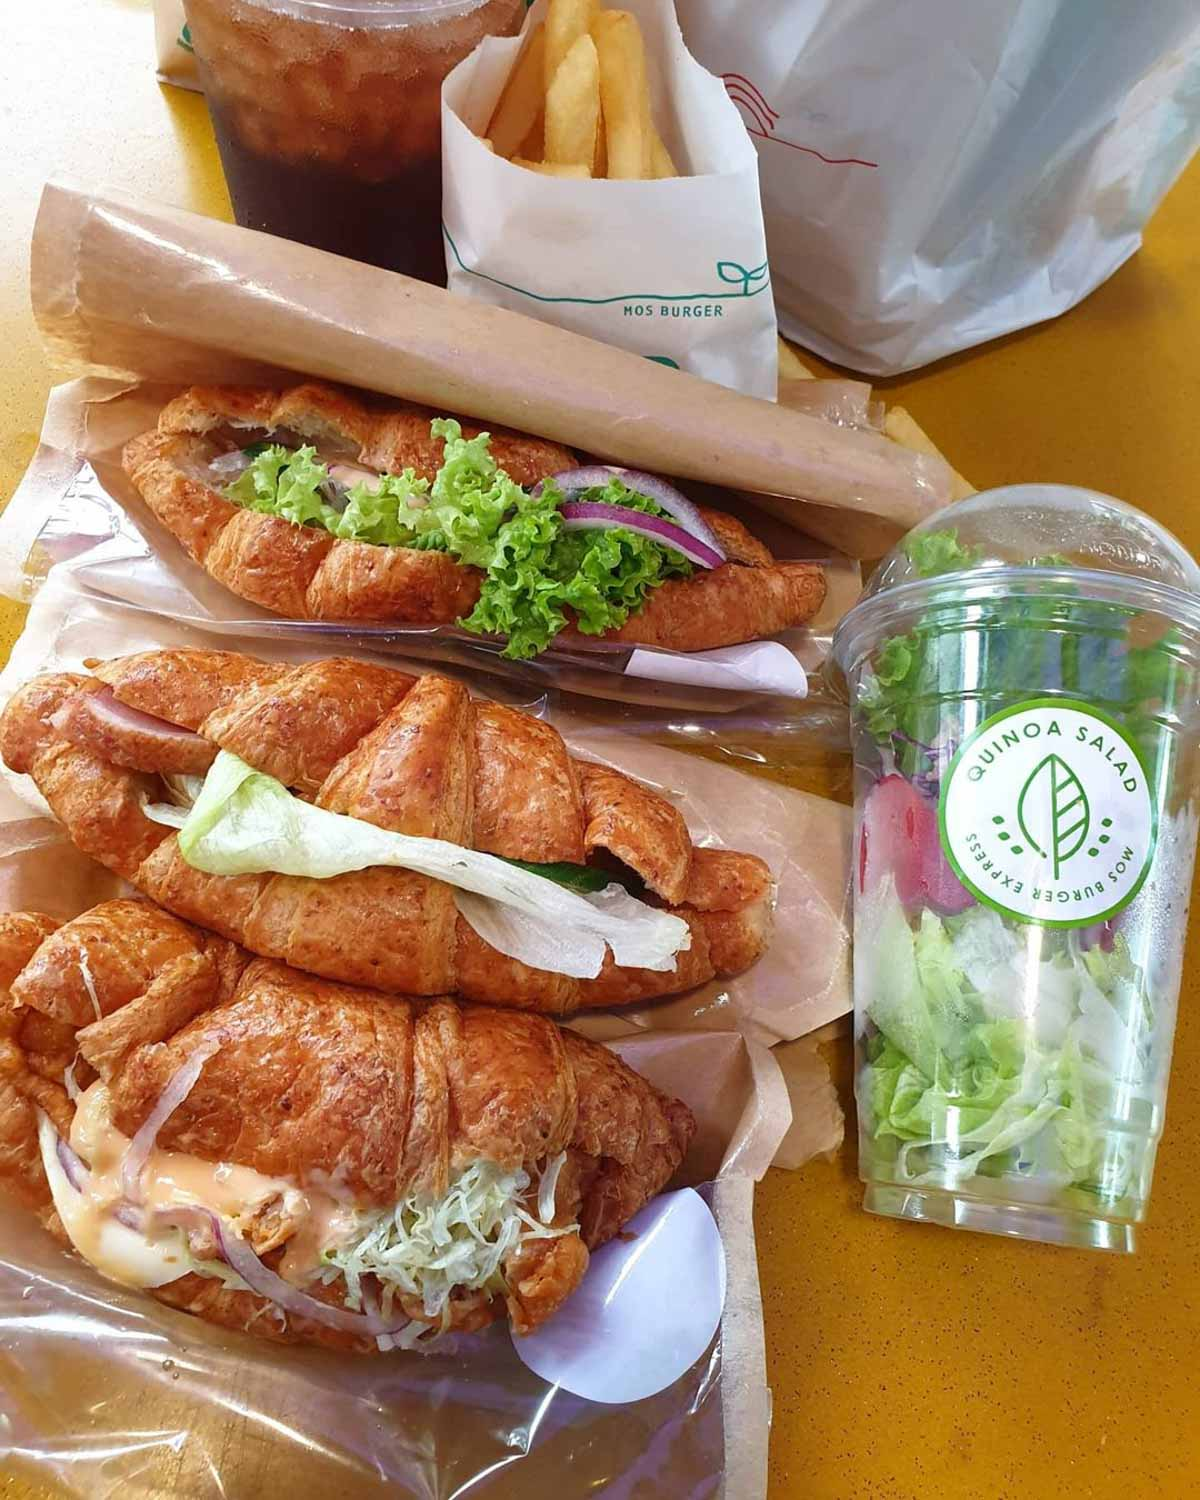 MOS Burger Express - croissants and salad cups